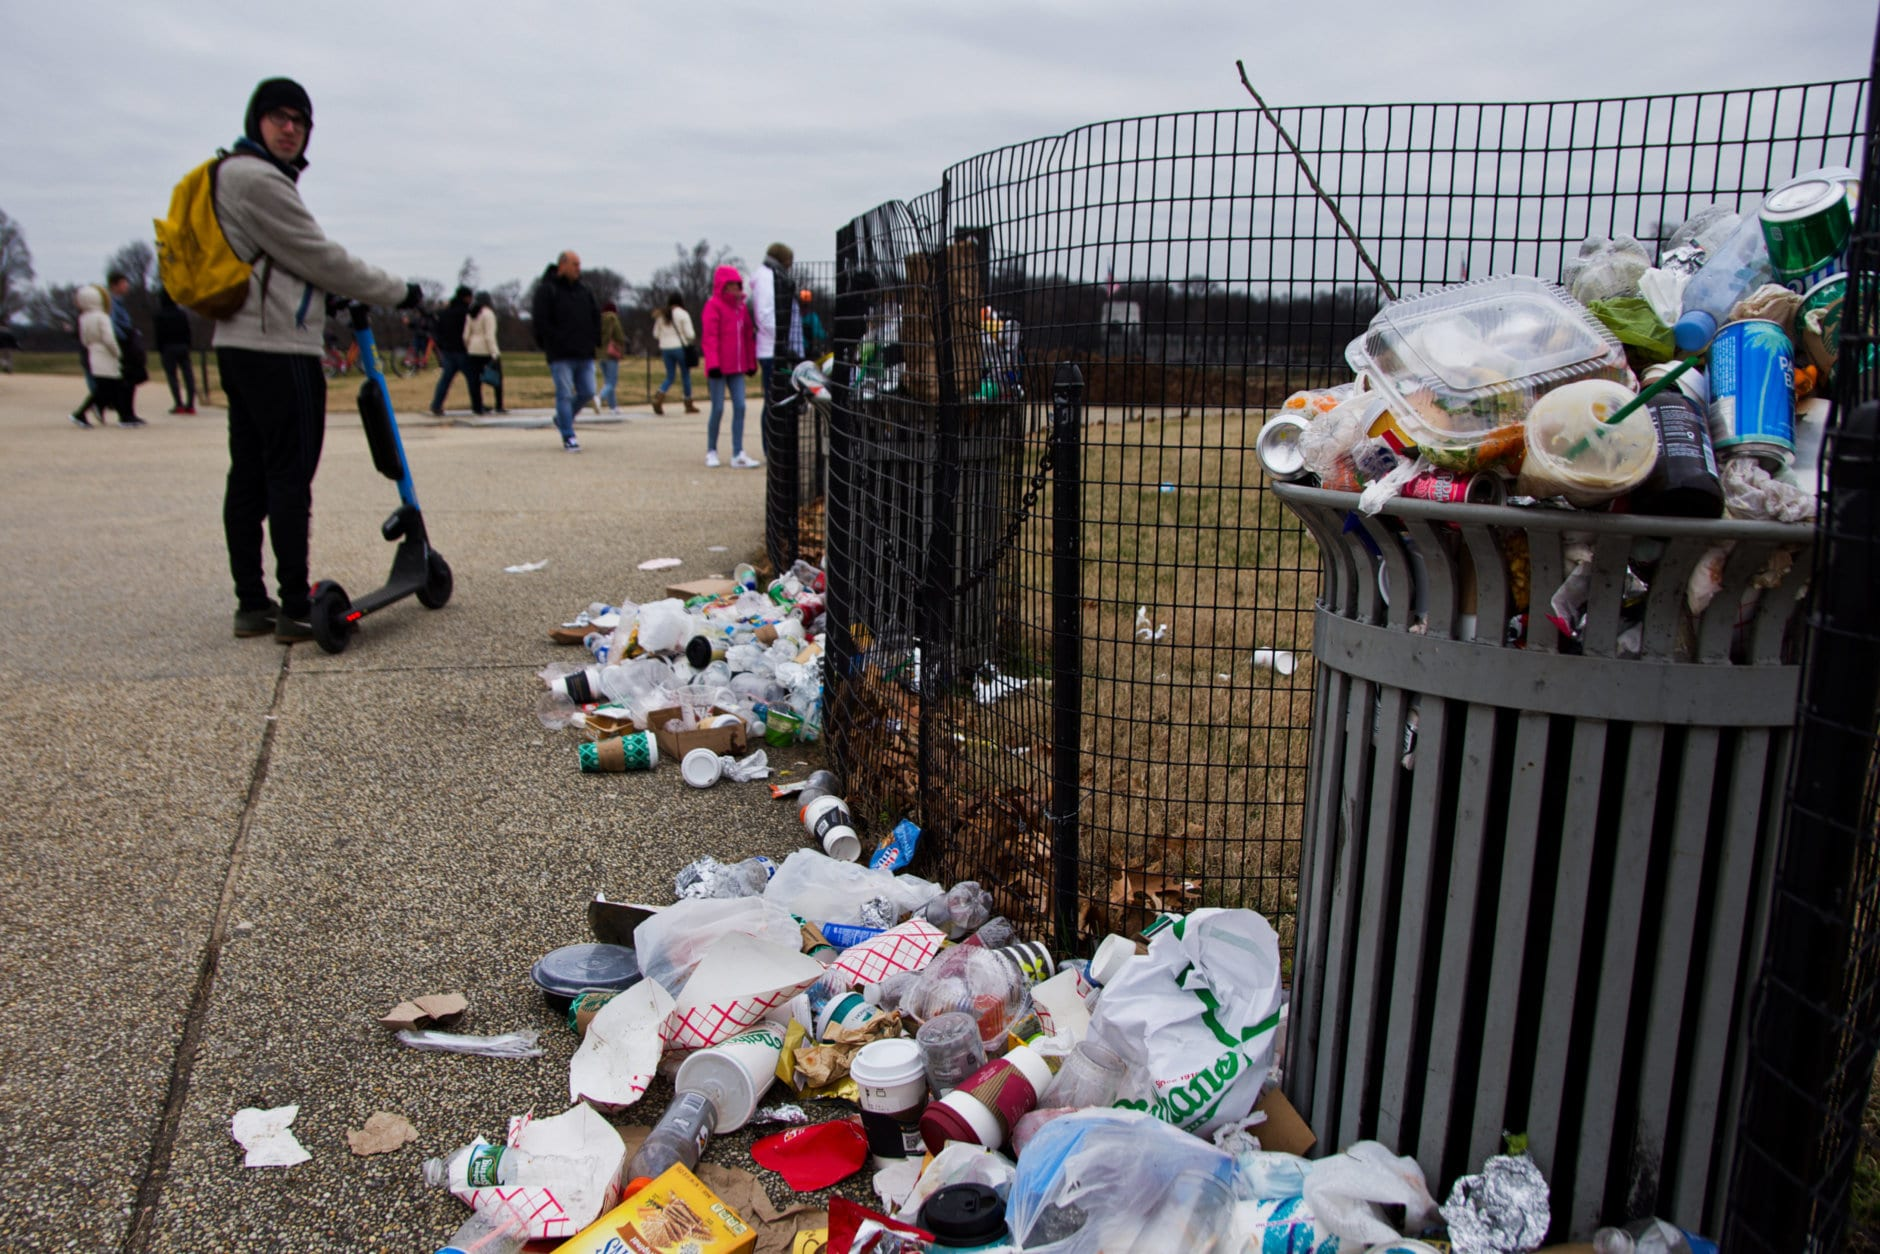 Garbage piles up on the National Mall during the government shutdown. (WTOP/Alejandro Alvarez)